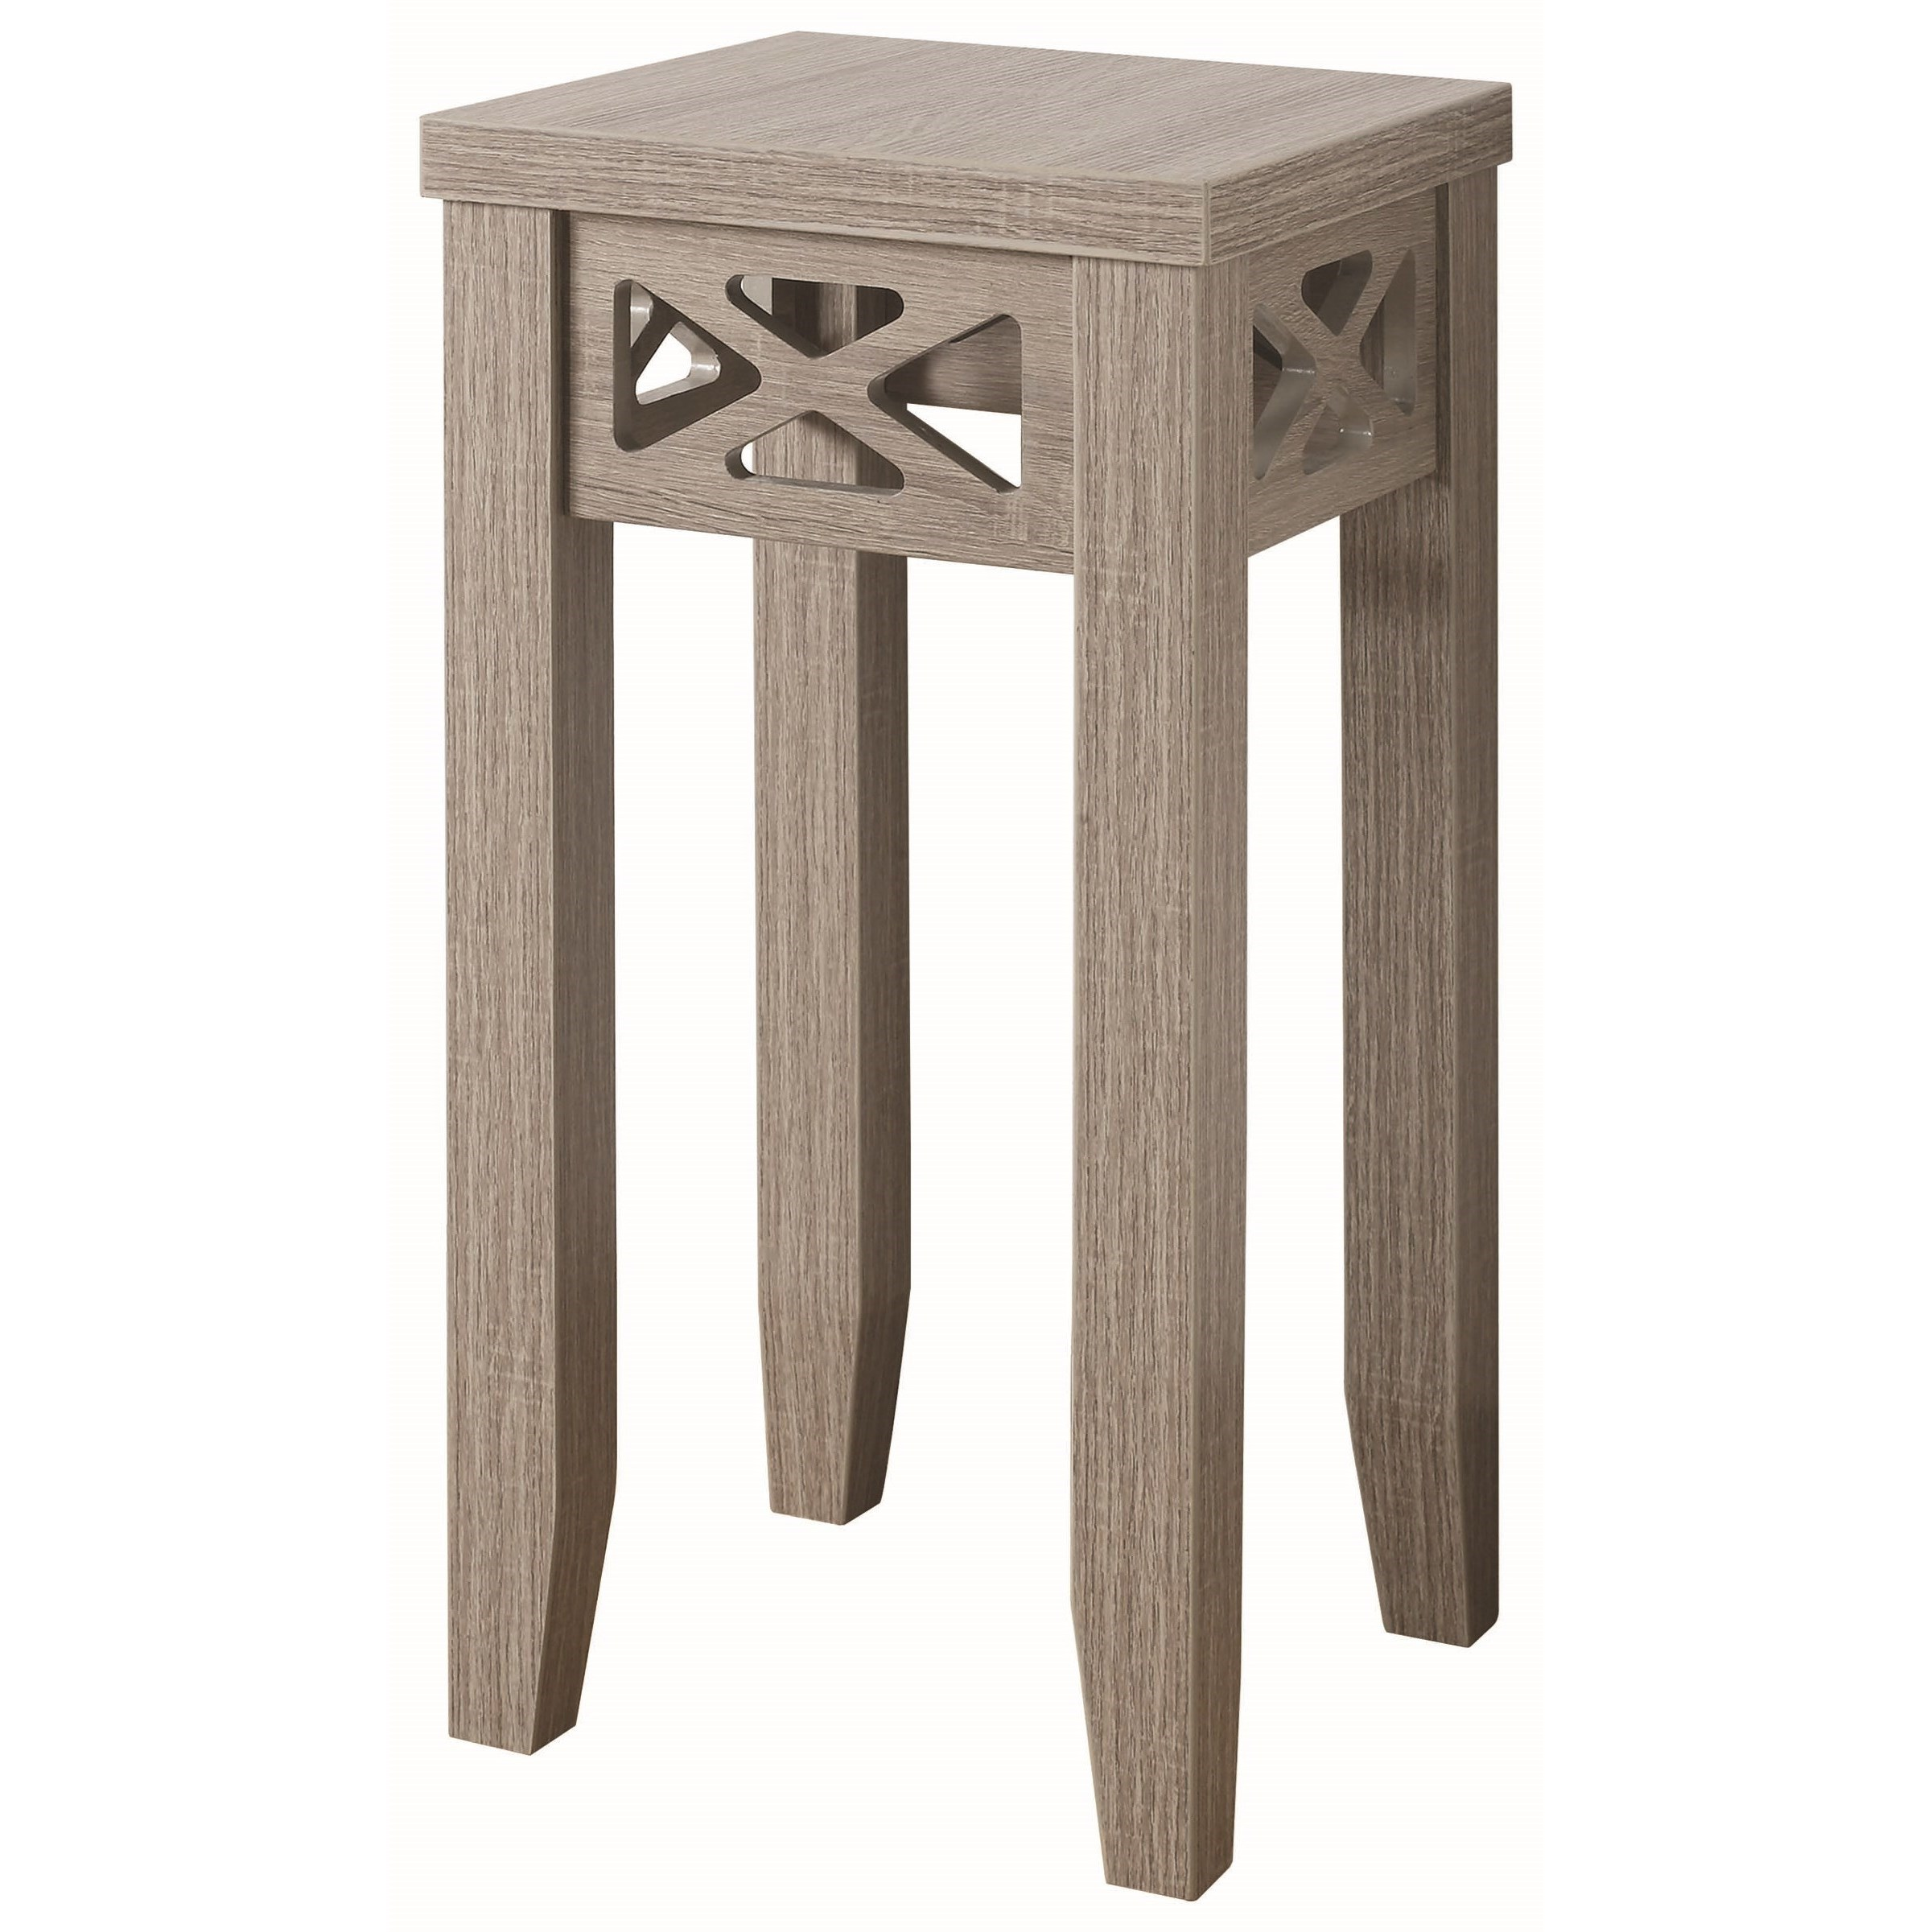 coaster accent tables table with triangle trim products color coas end slender console patio umbrella stand steel dining legs folding outdoor large lamps for living room nesting